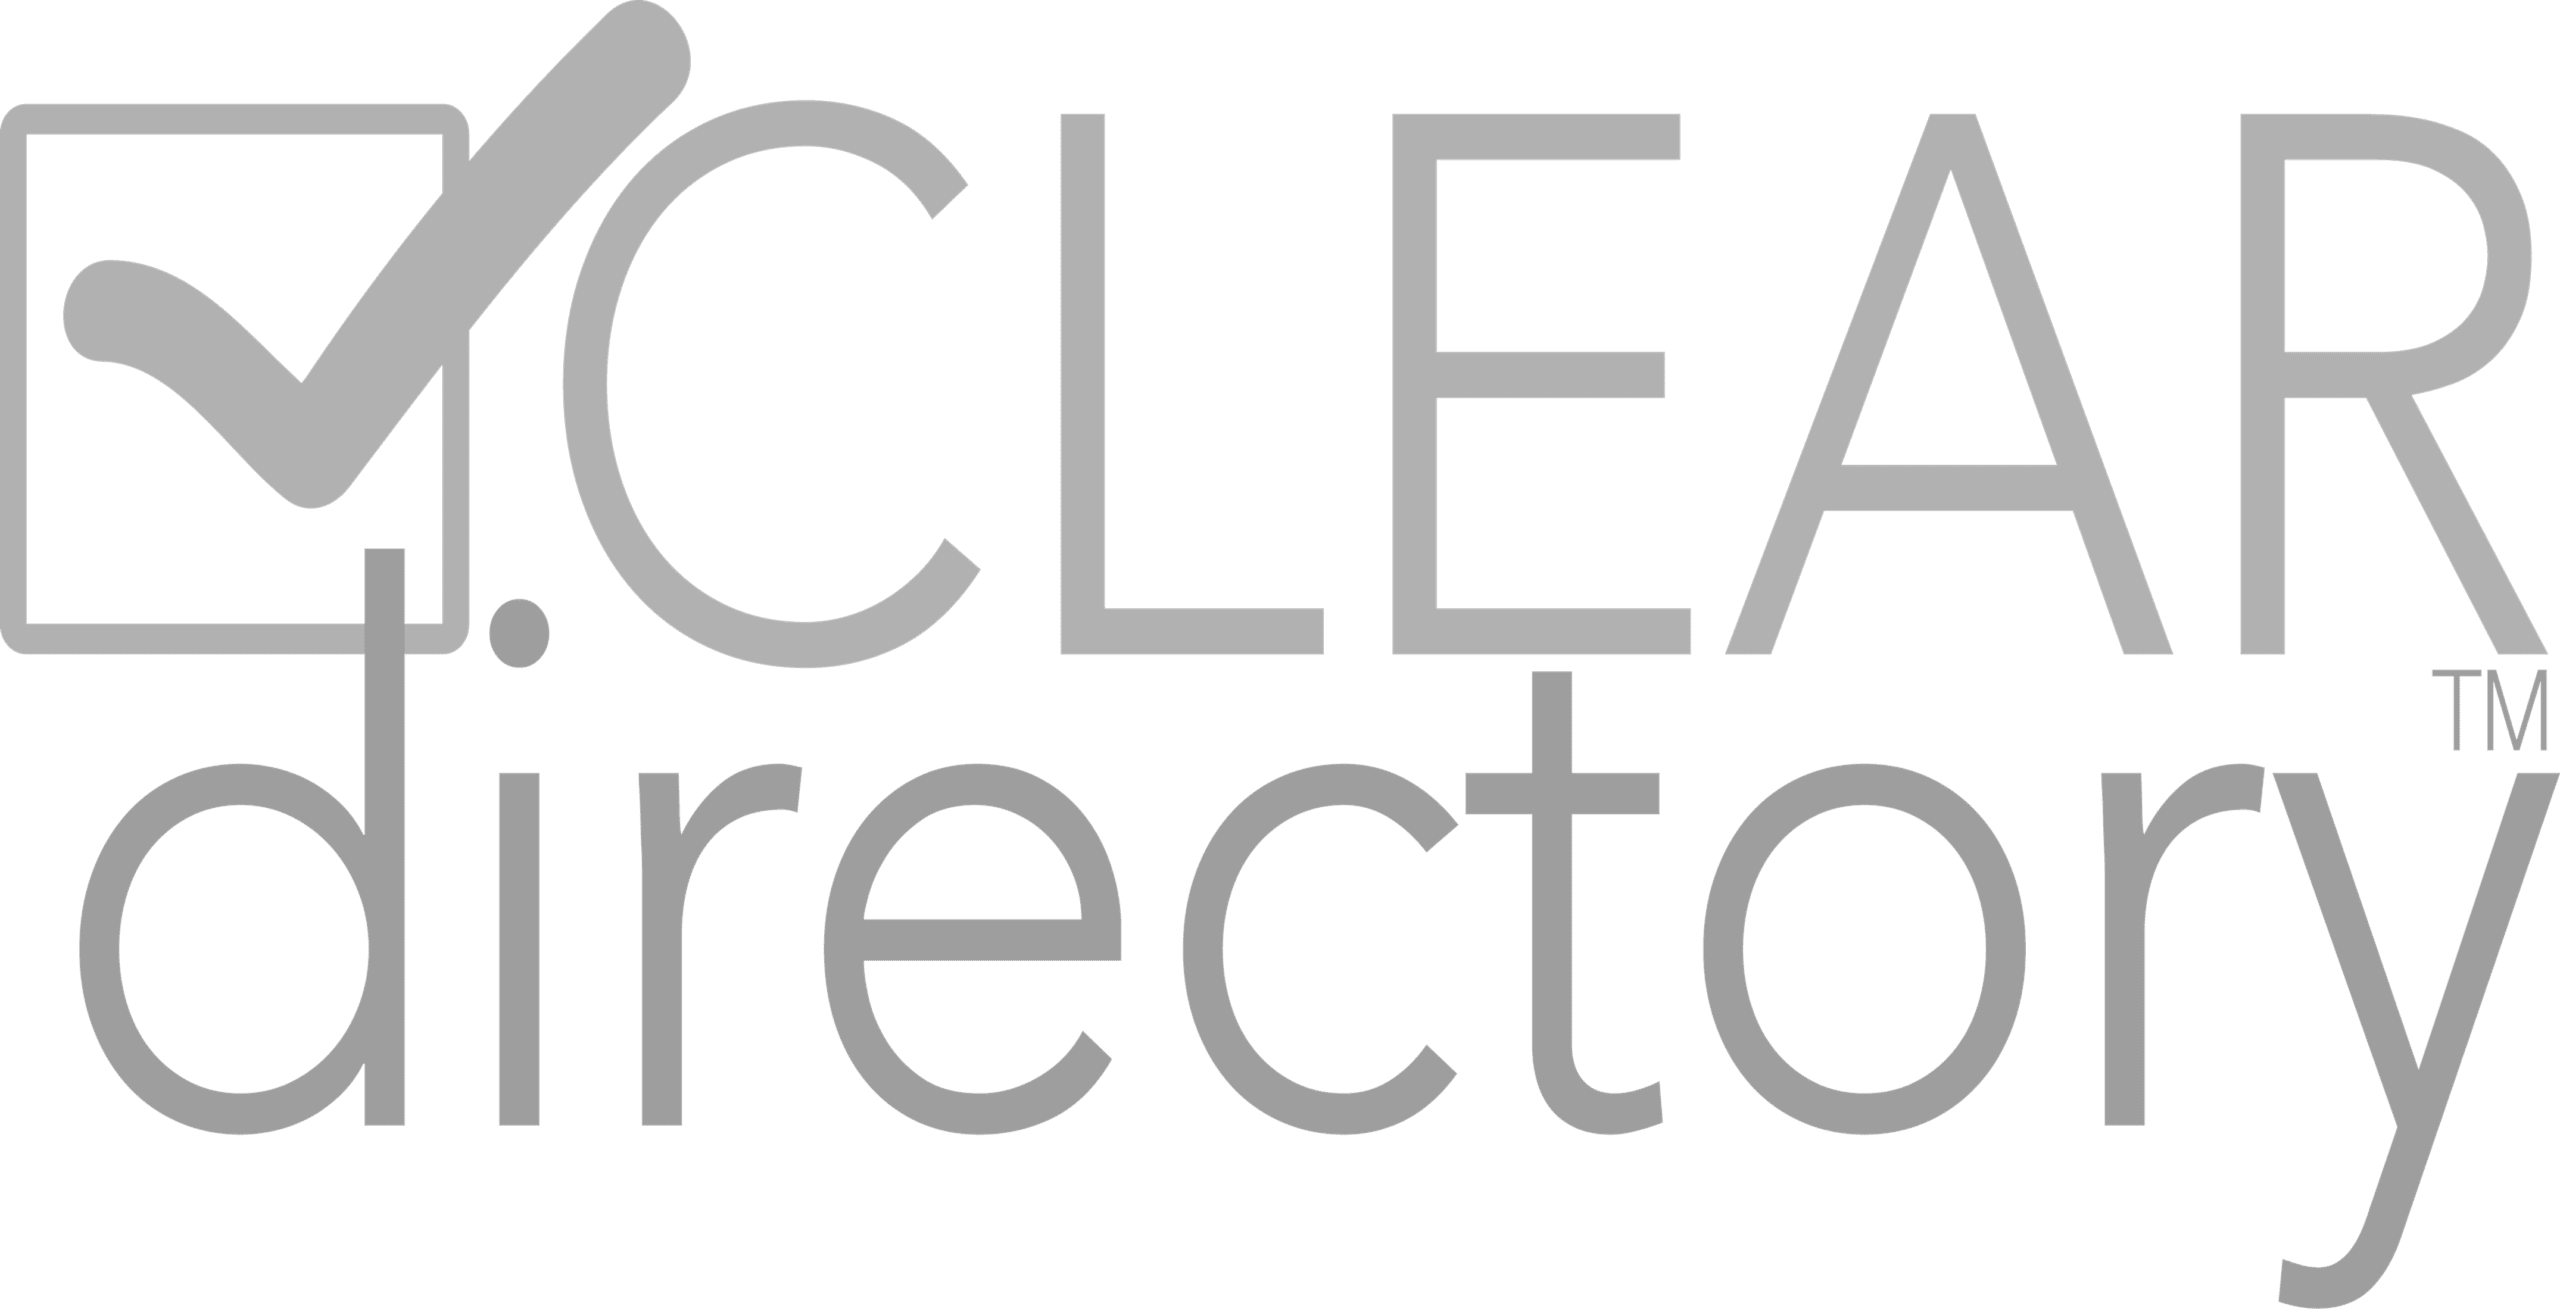 Hazz Design Vetted in The Clear Directory